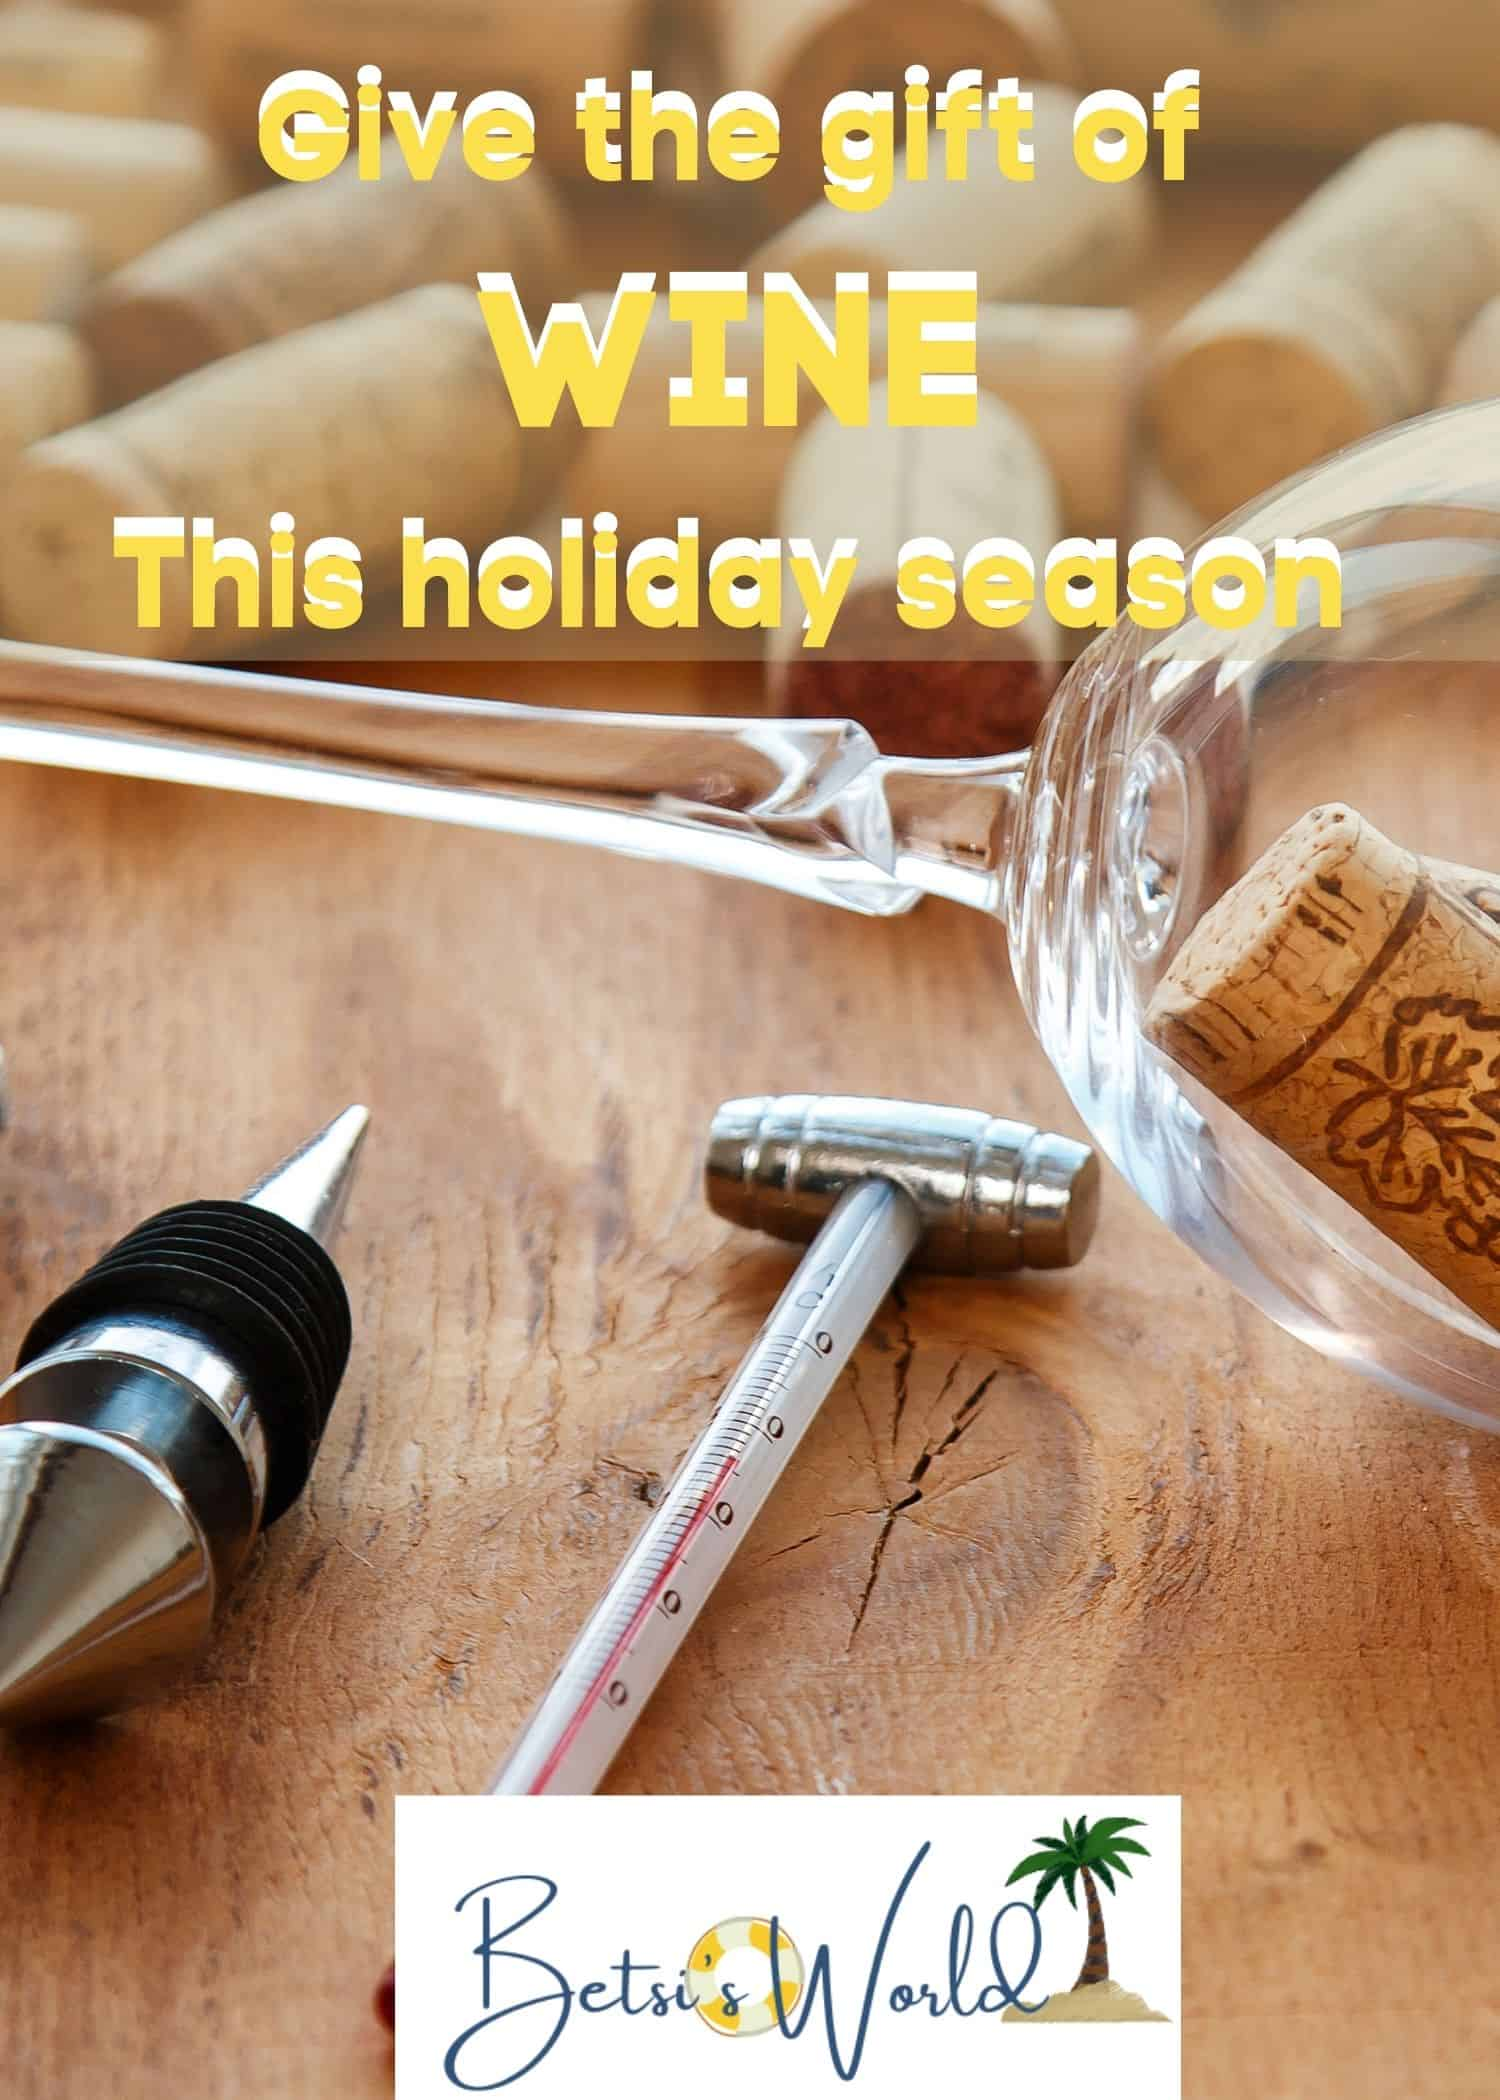 Gifts for Wine Lovers make the ideal holiday gift. Here are top picks for the wine lovers on your list this holiday season. #christmas #christmasgiftlist #giftsforwinelovers